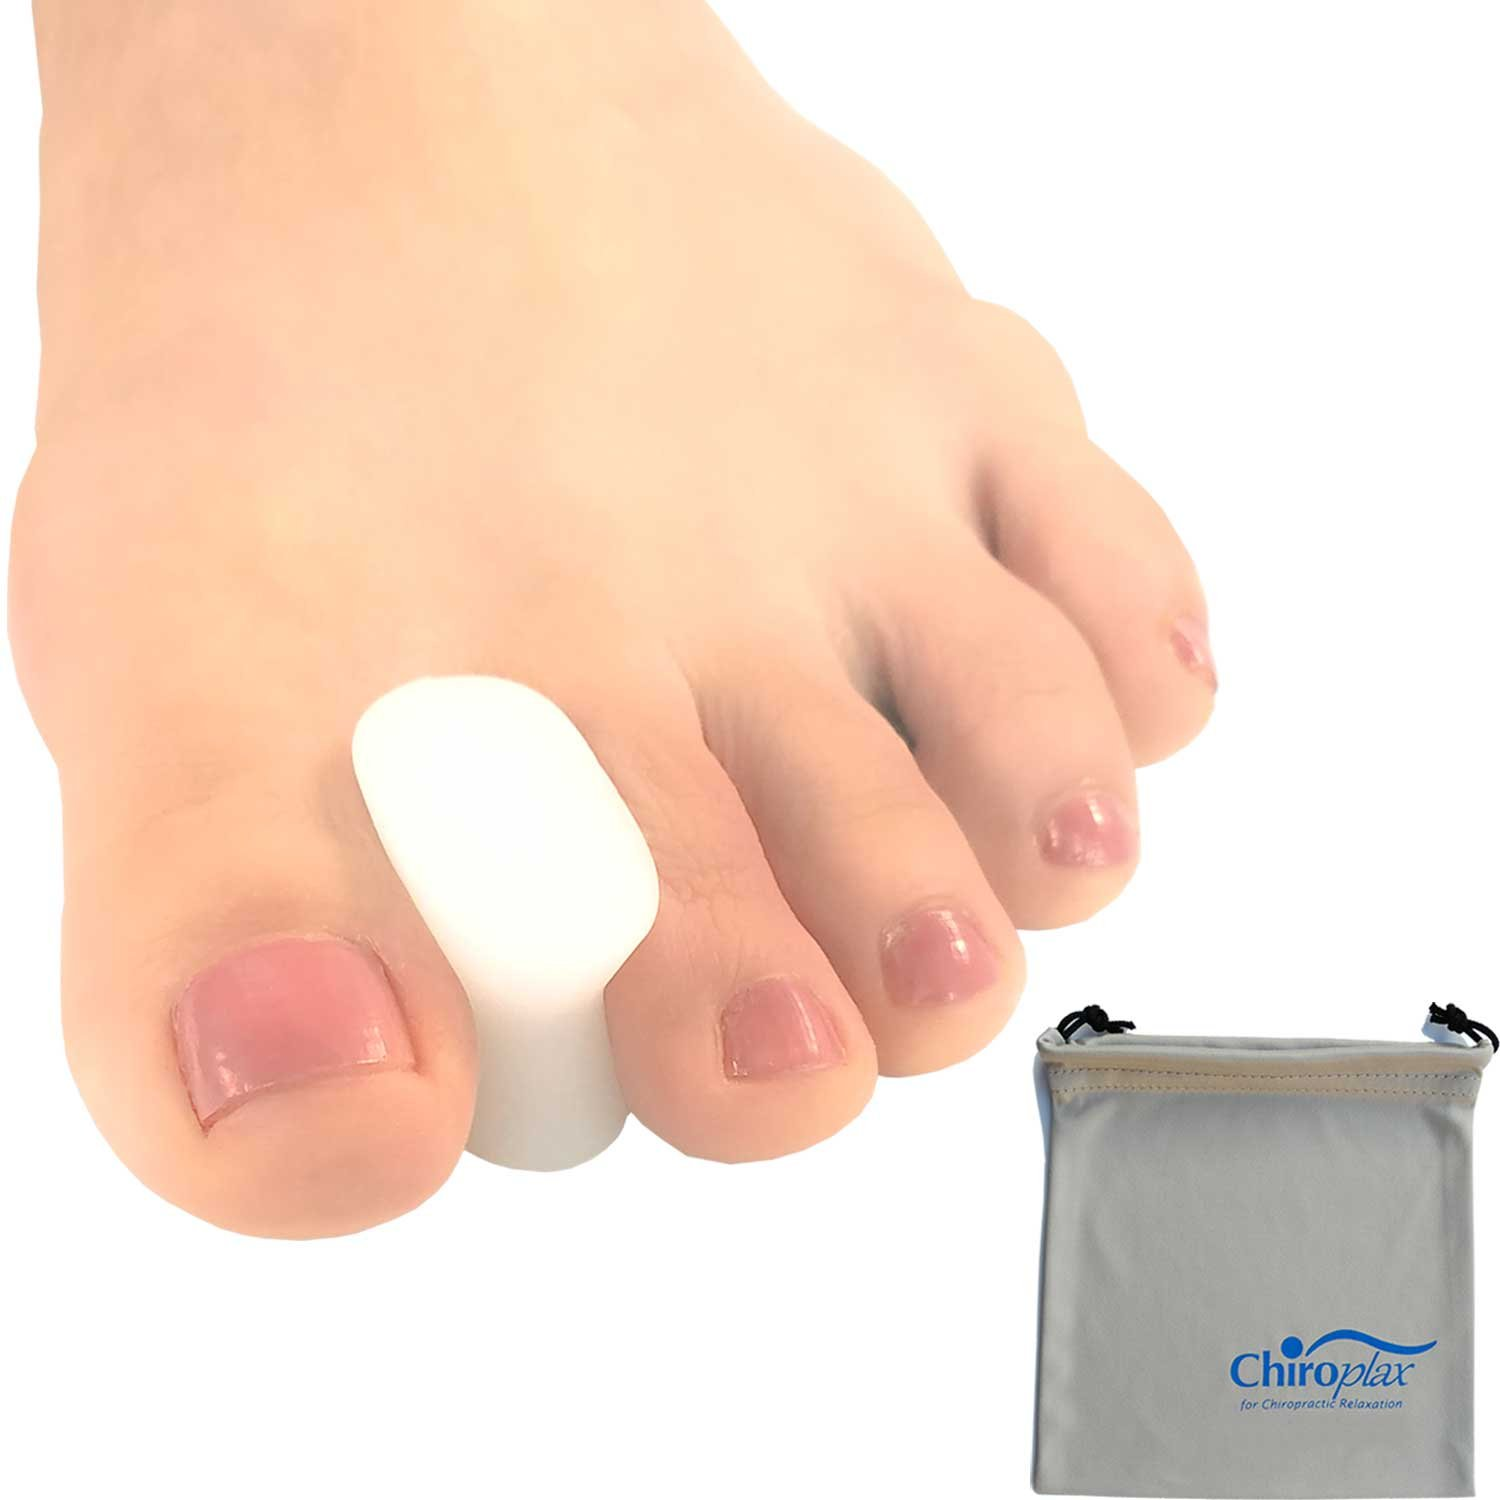 Chiroplax Gel Toe Spacers (6 Pieces+ 1 Pouch) Toe Separator Spreader for Bunion Pain Relief (Medium)